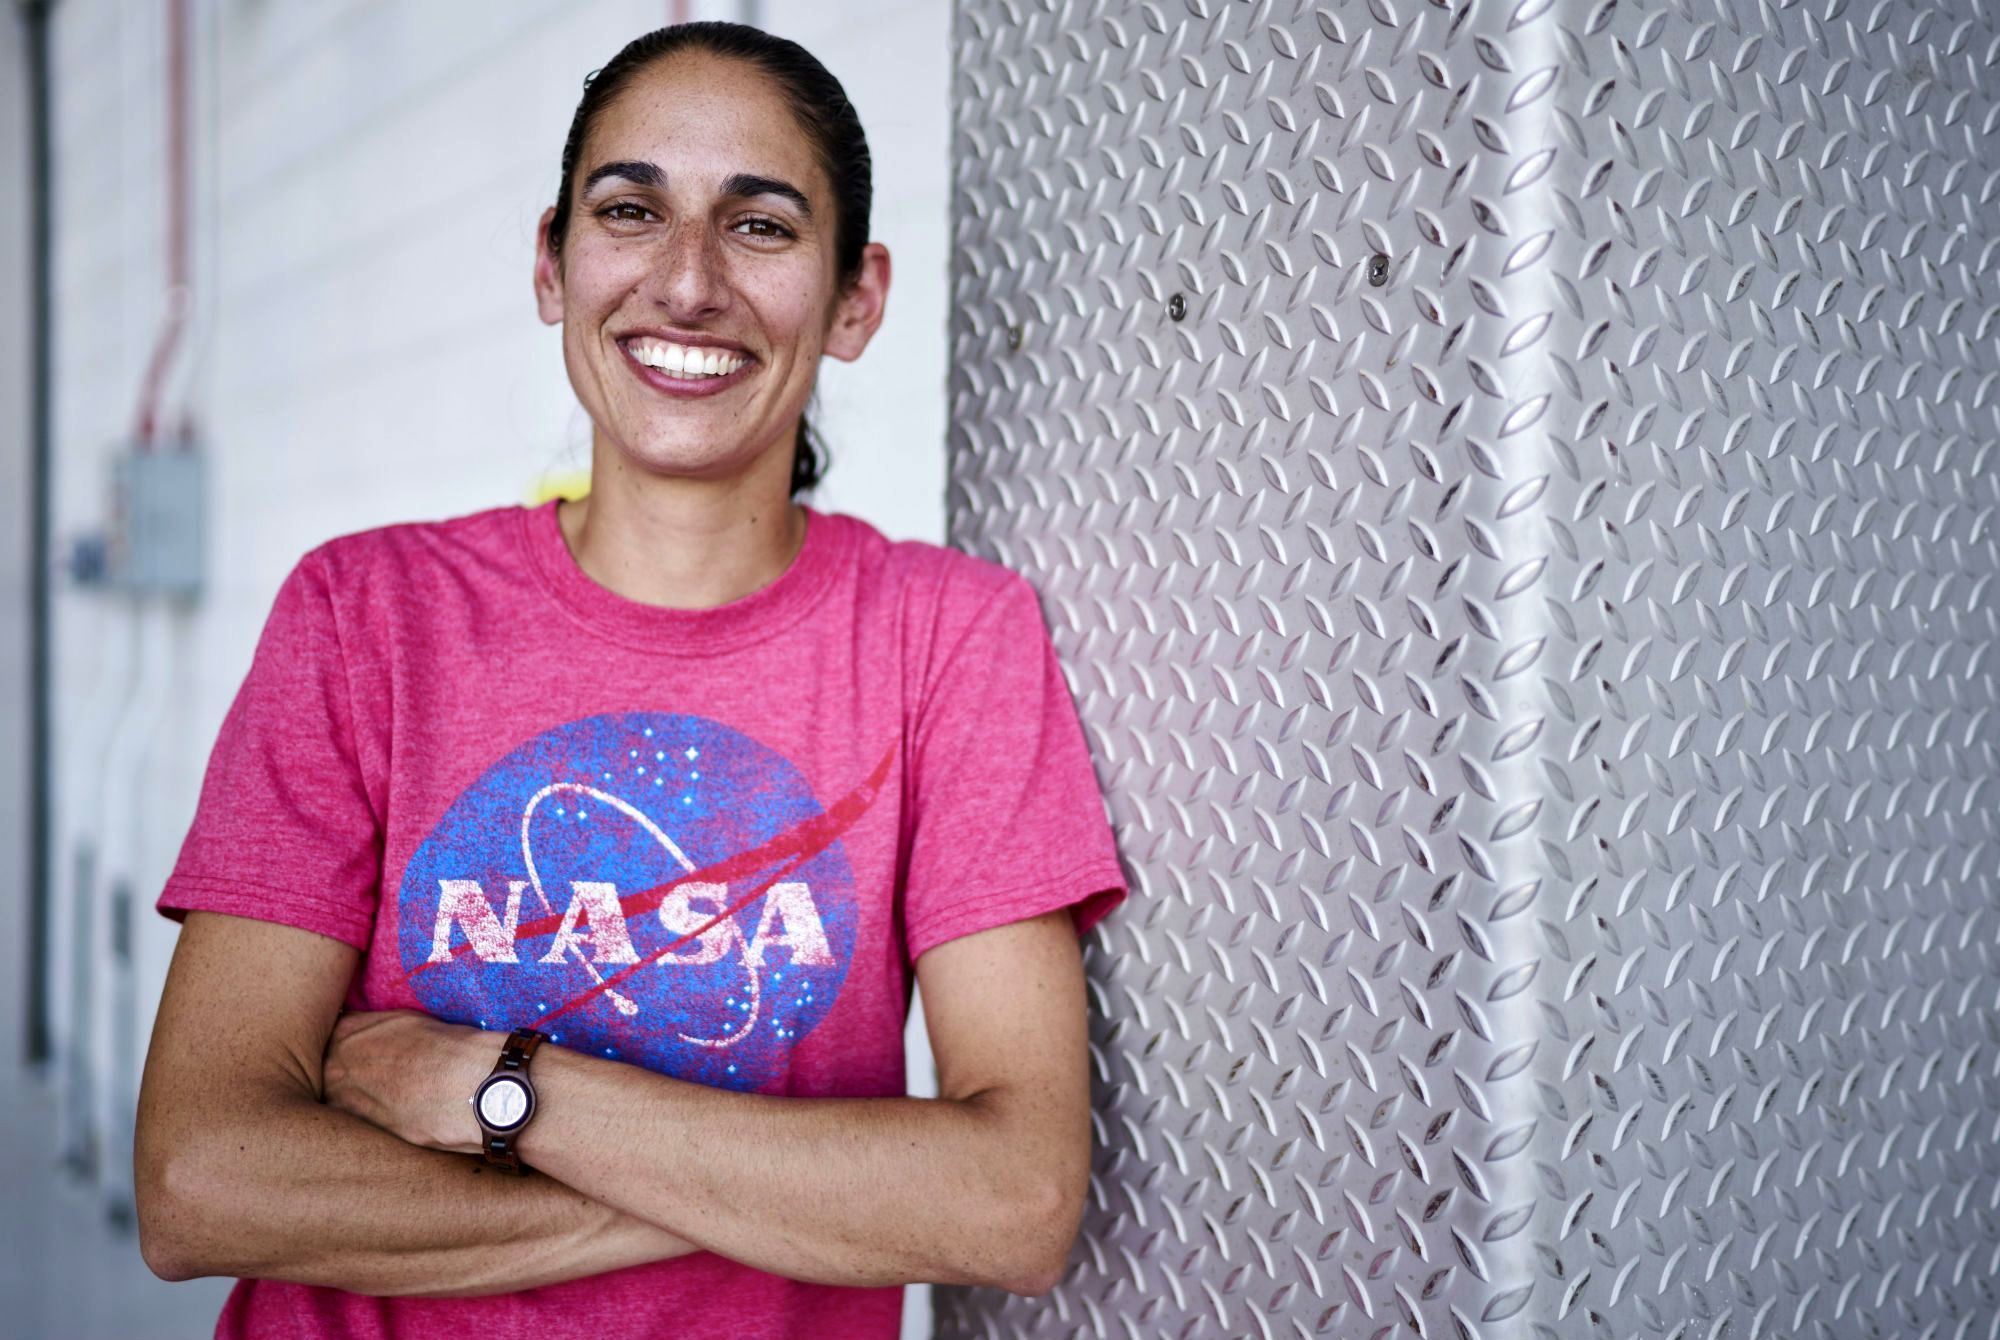 NASA is finally bringing on new astronauts — including this cool chick